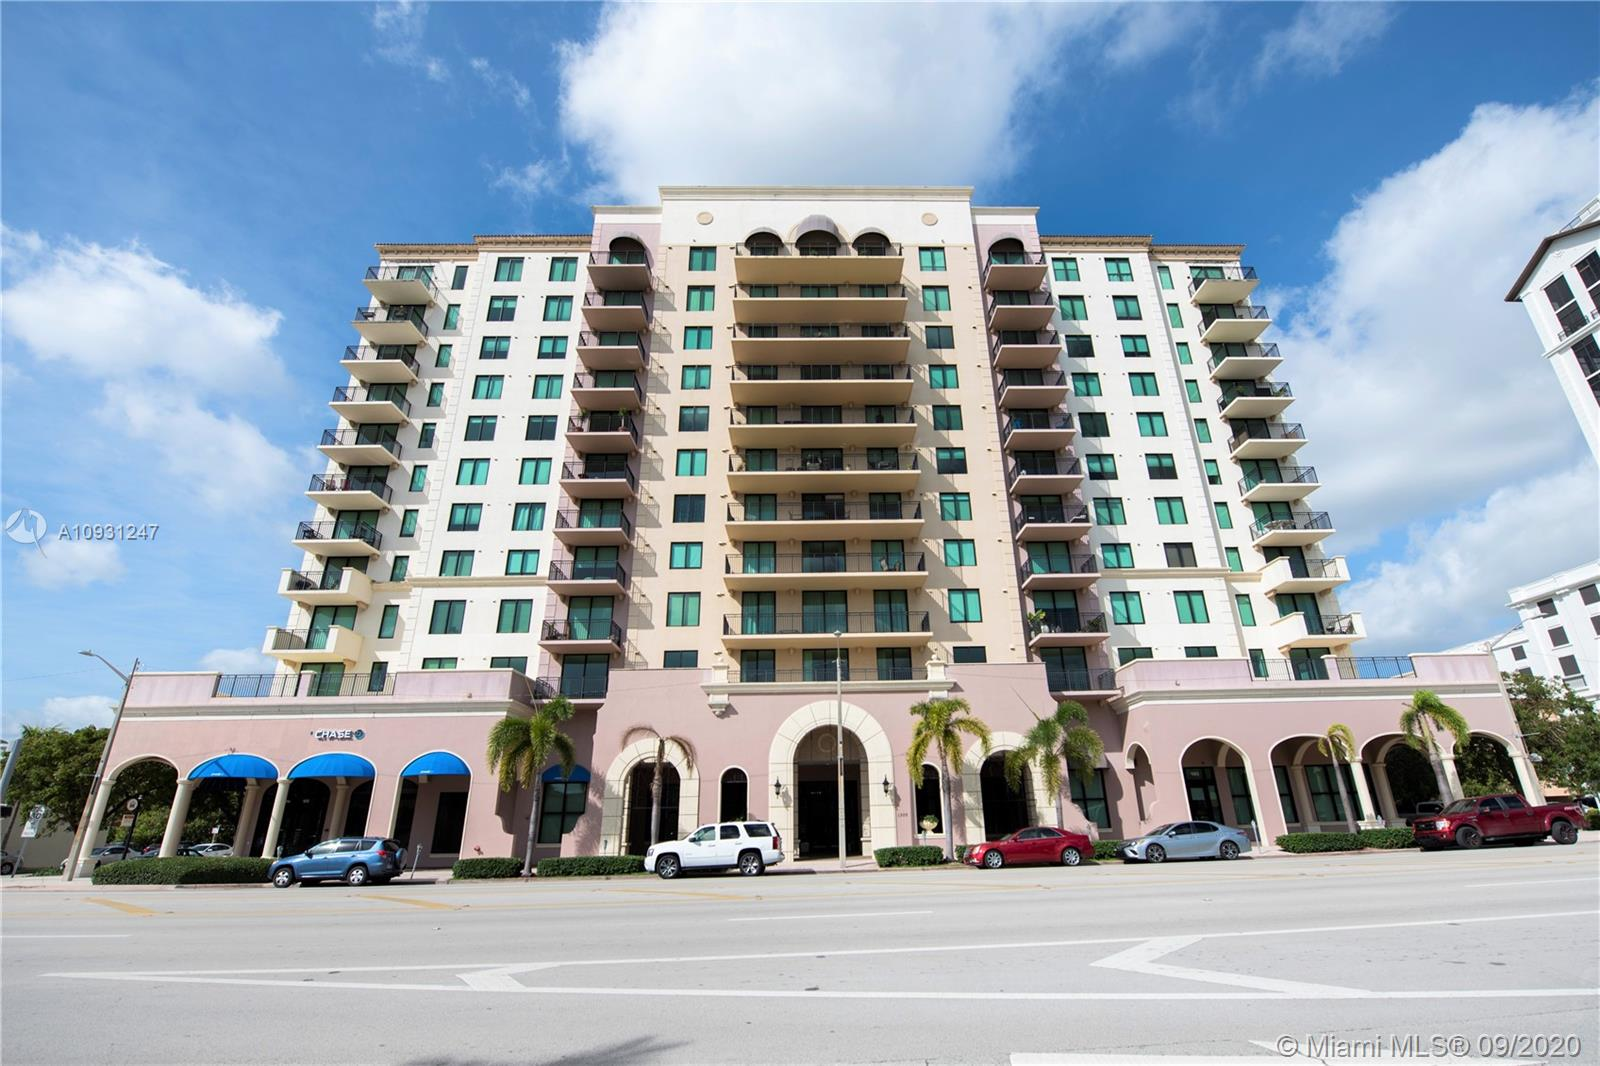 CONDO IN THE HEART OF CORAL GABLES. ONLY FEW STEPS OFF MIRACLE MILE AND PONCE DE LEON. MINUTES FROM MERRICK PARK AND WALK TO SHOPS AN DINNING. CLOSE TO AIRPORT. INCLUDES WOOD CABINETS IN KITCHEN AND BATHROOMS, GRANITE COUNTER TOPS IN KITCHEN, MARBLE COUNTER TOPS IN BATHROOMS, ALL STAINLESS STEEL KITCHEN APPLIANCES. IMPACT WINDOWS AND CALIFORNIA WALKING CLOSETS. TWO ASSIGNED PARKING SPACES 347 & 348